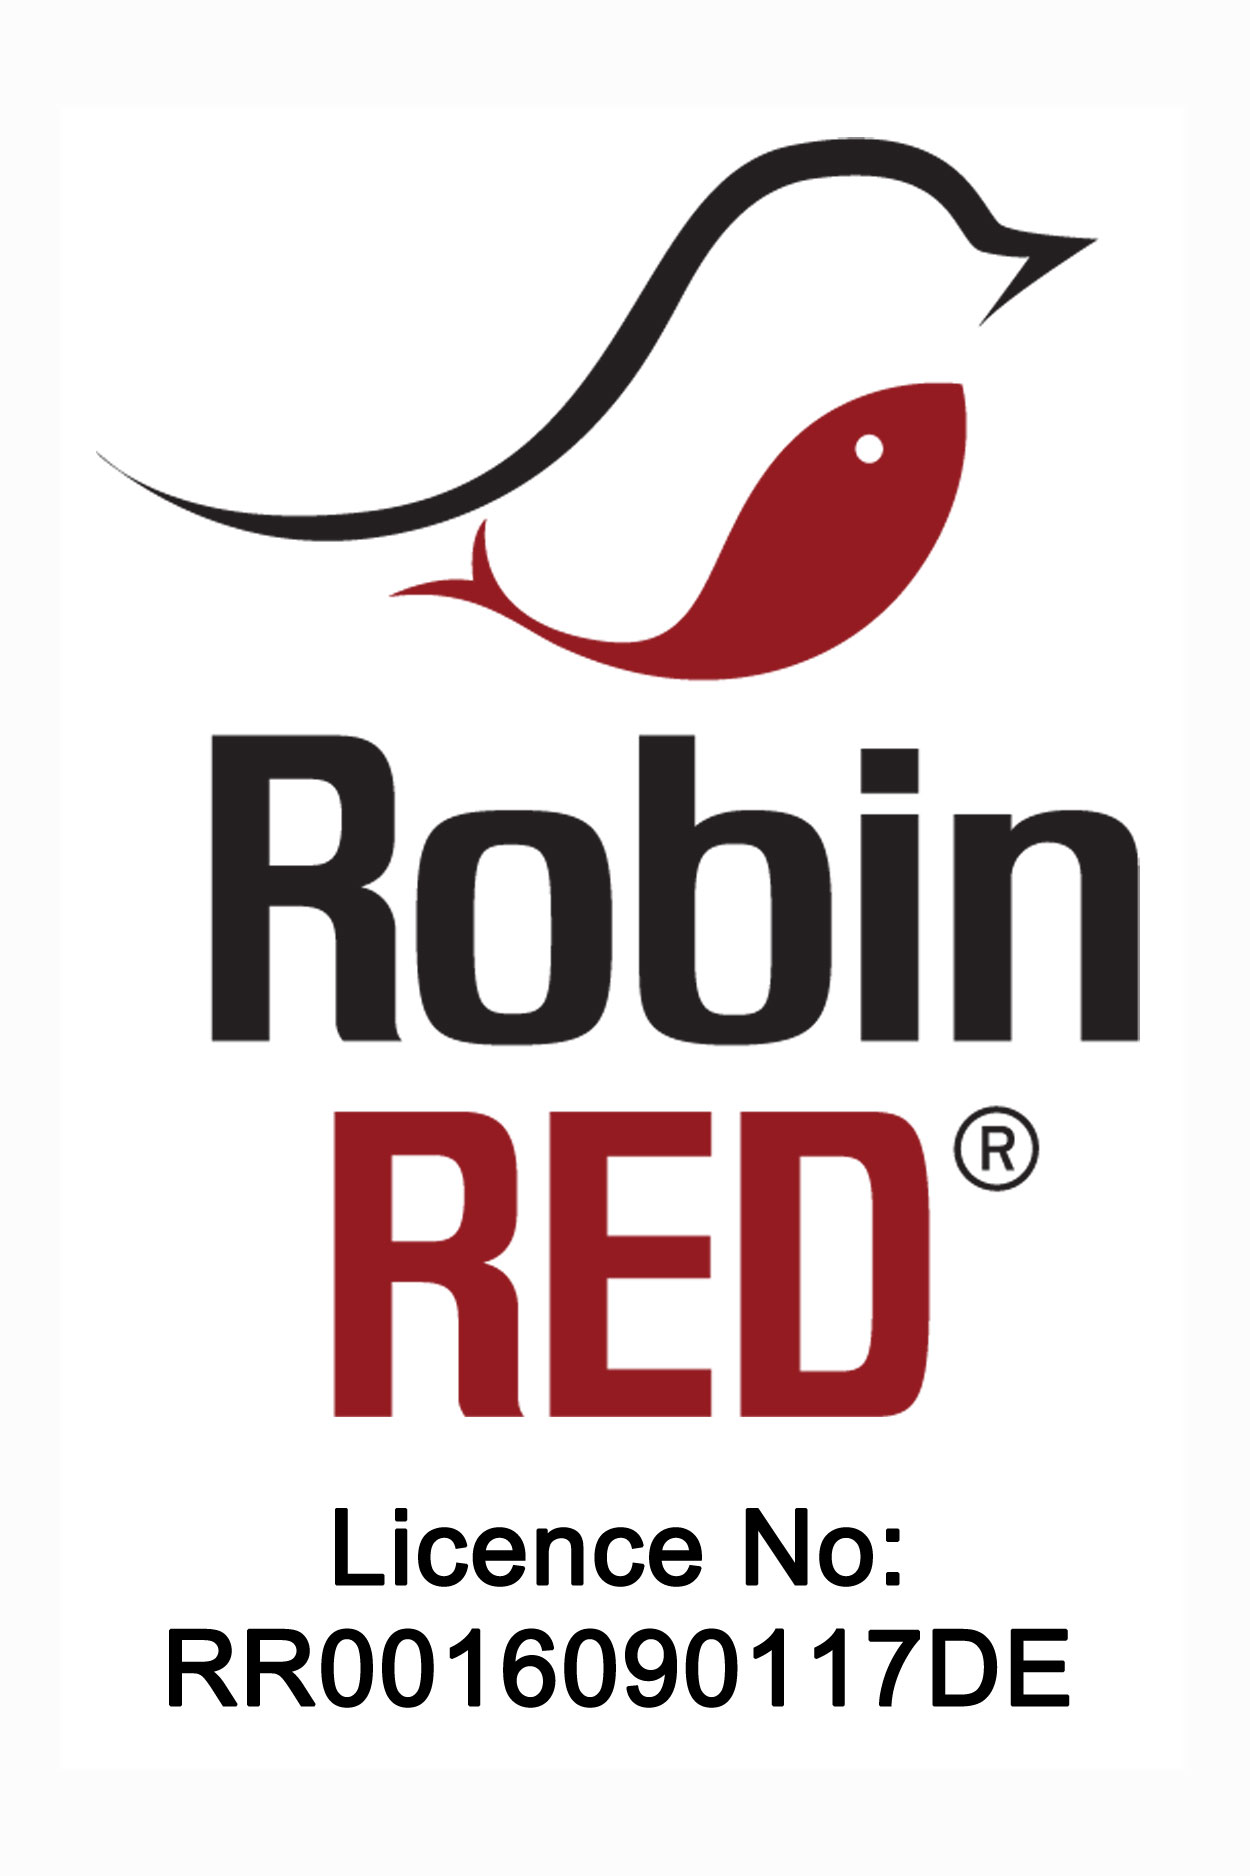 MY BAITS Robin Red Licence